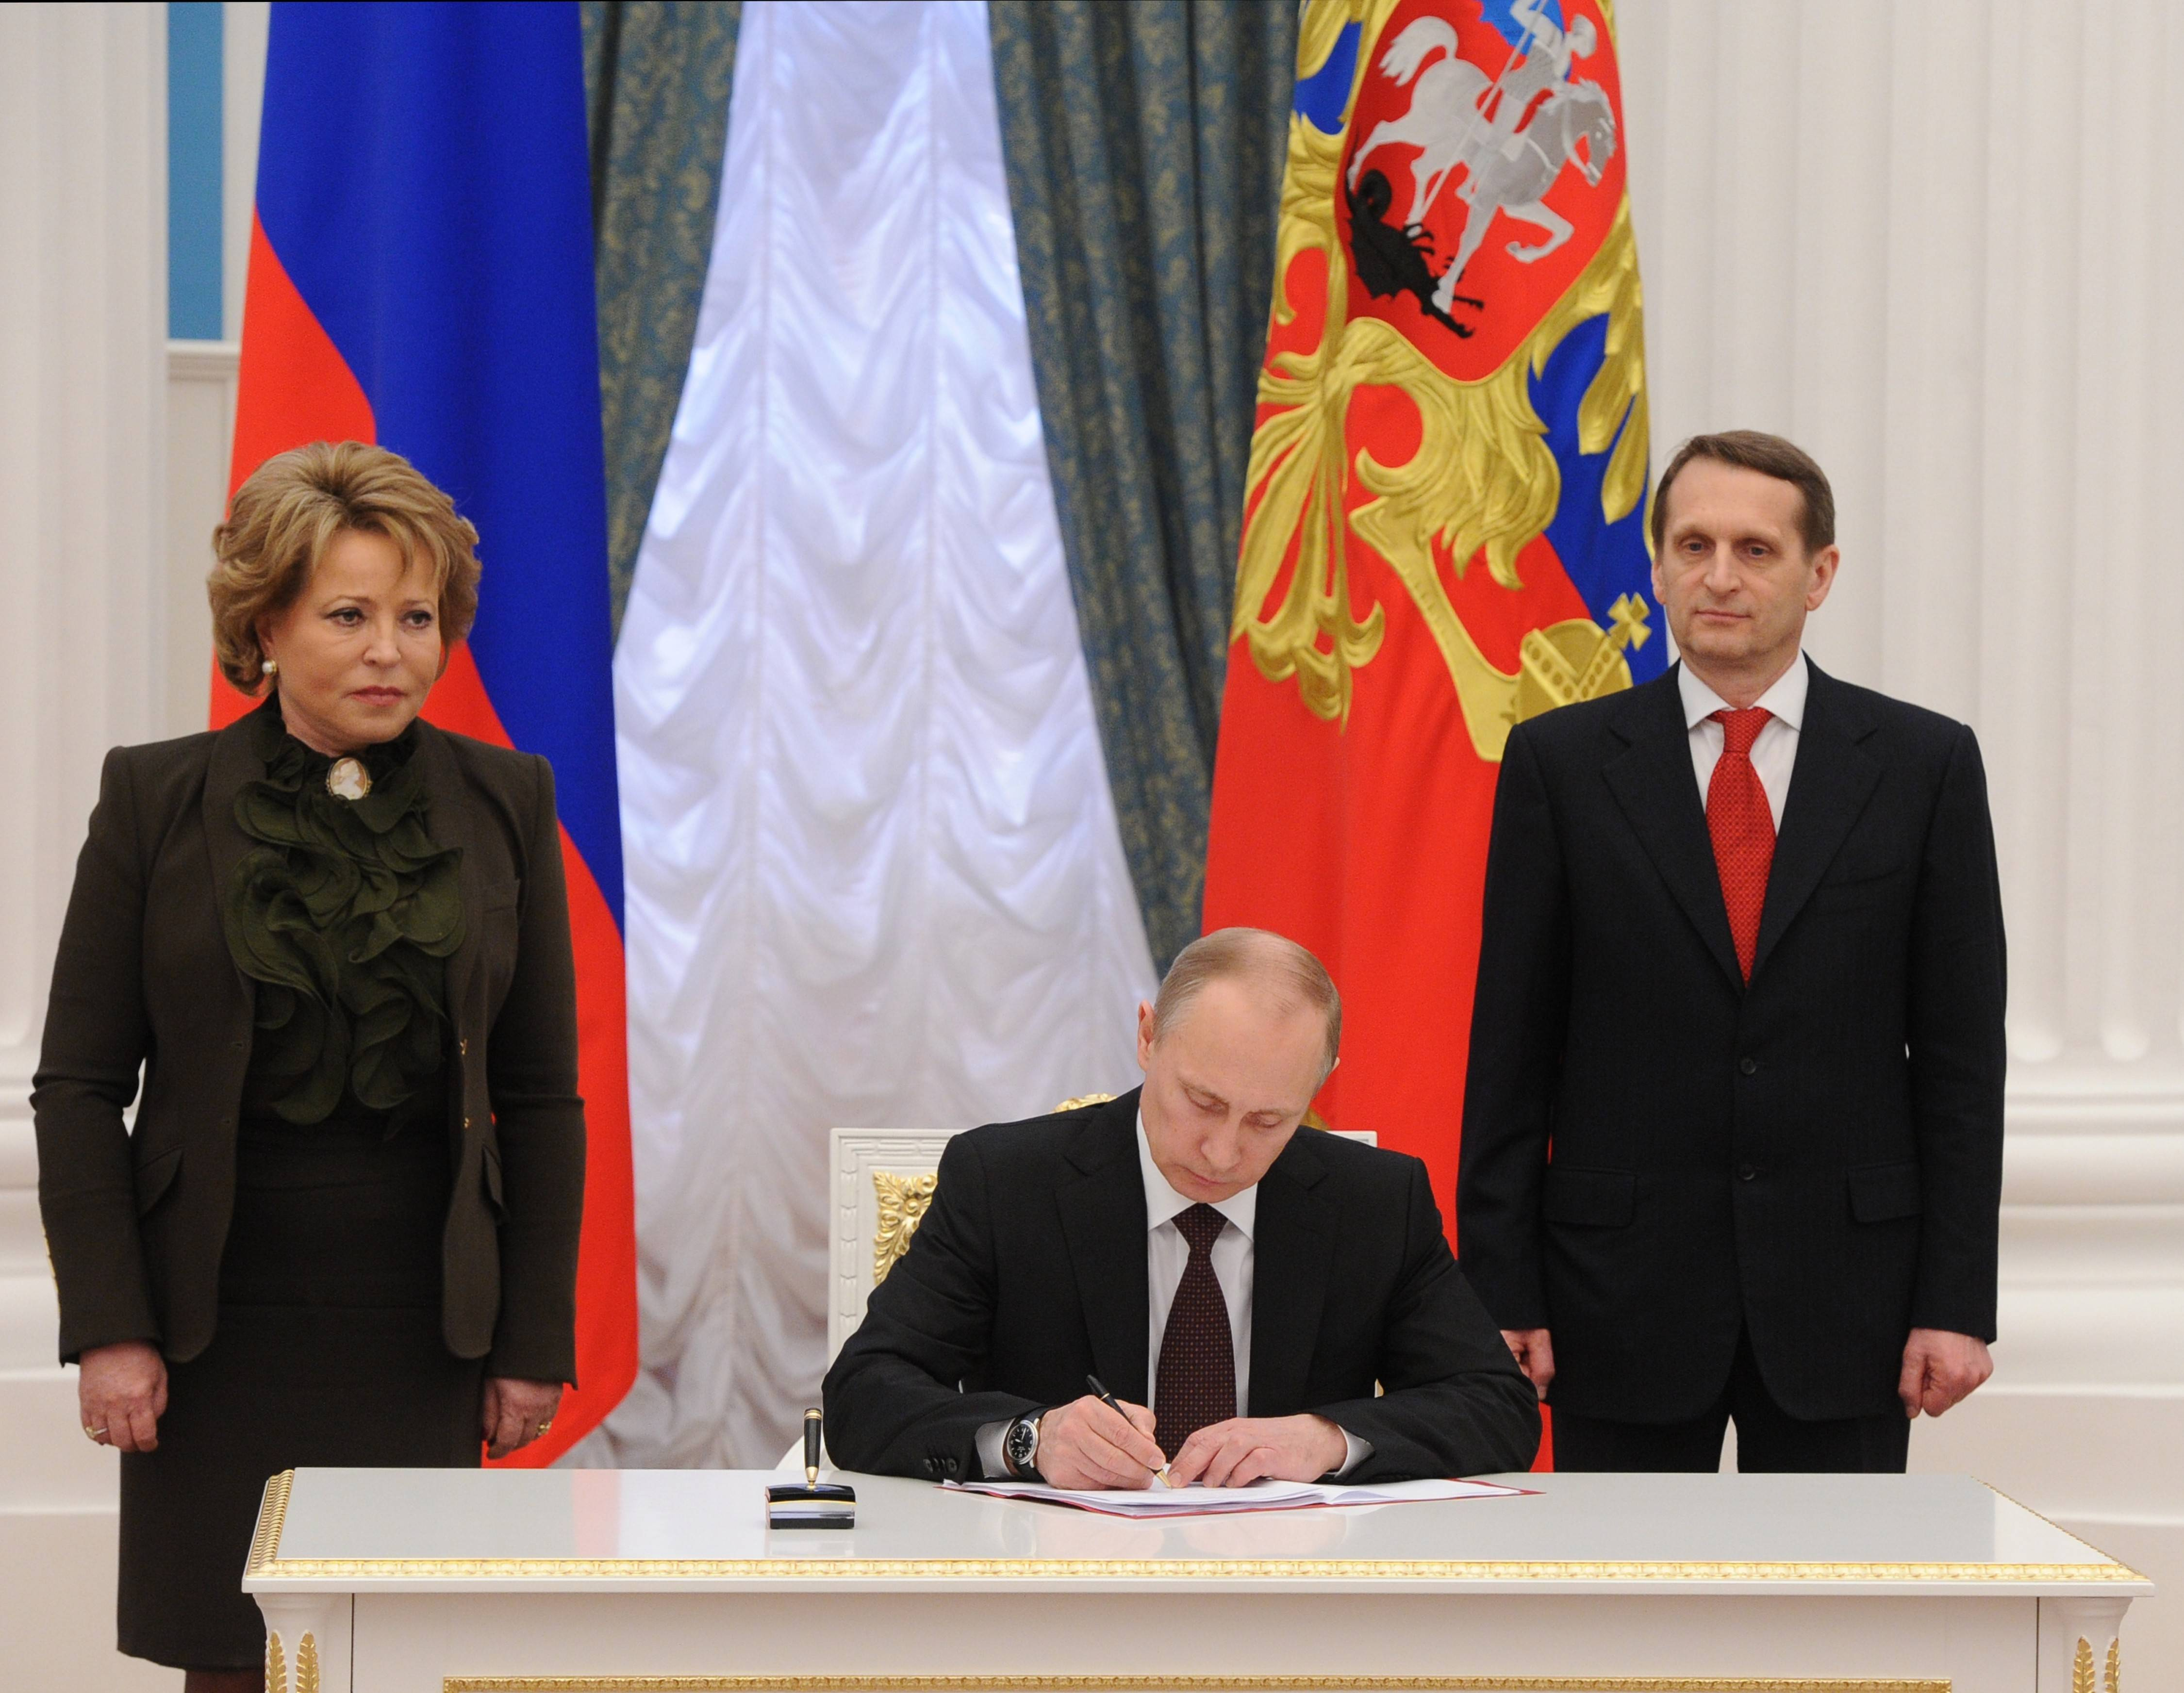 Russian President Vladimir Putin, flanked by Upper House Speaker Valentina Matviyenko, left, and Lower House Speaker Sergei Naryshkin, signs bills Friday making Crimea part of Russia in the Kremlin in Moscow.